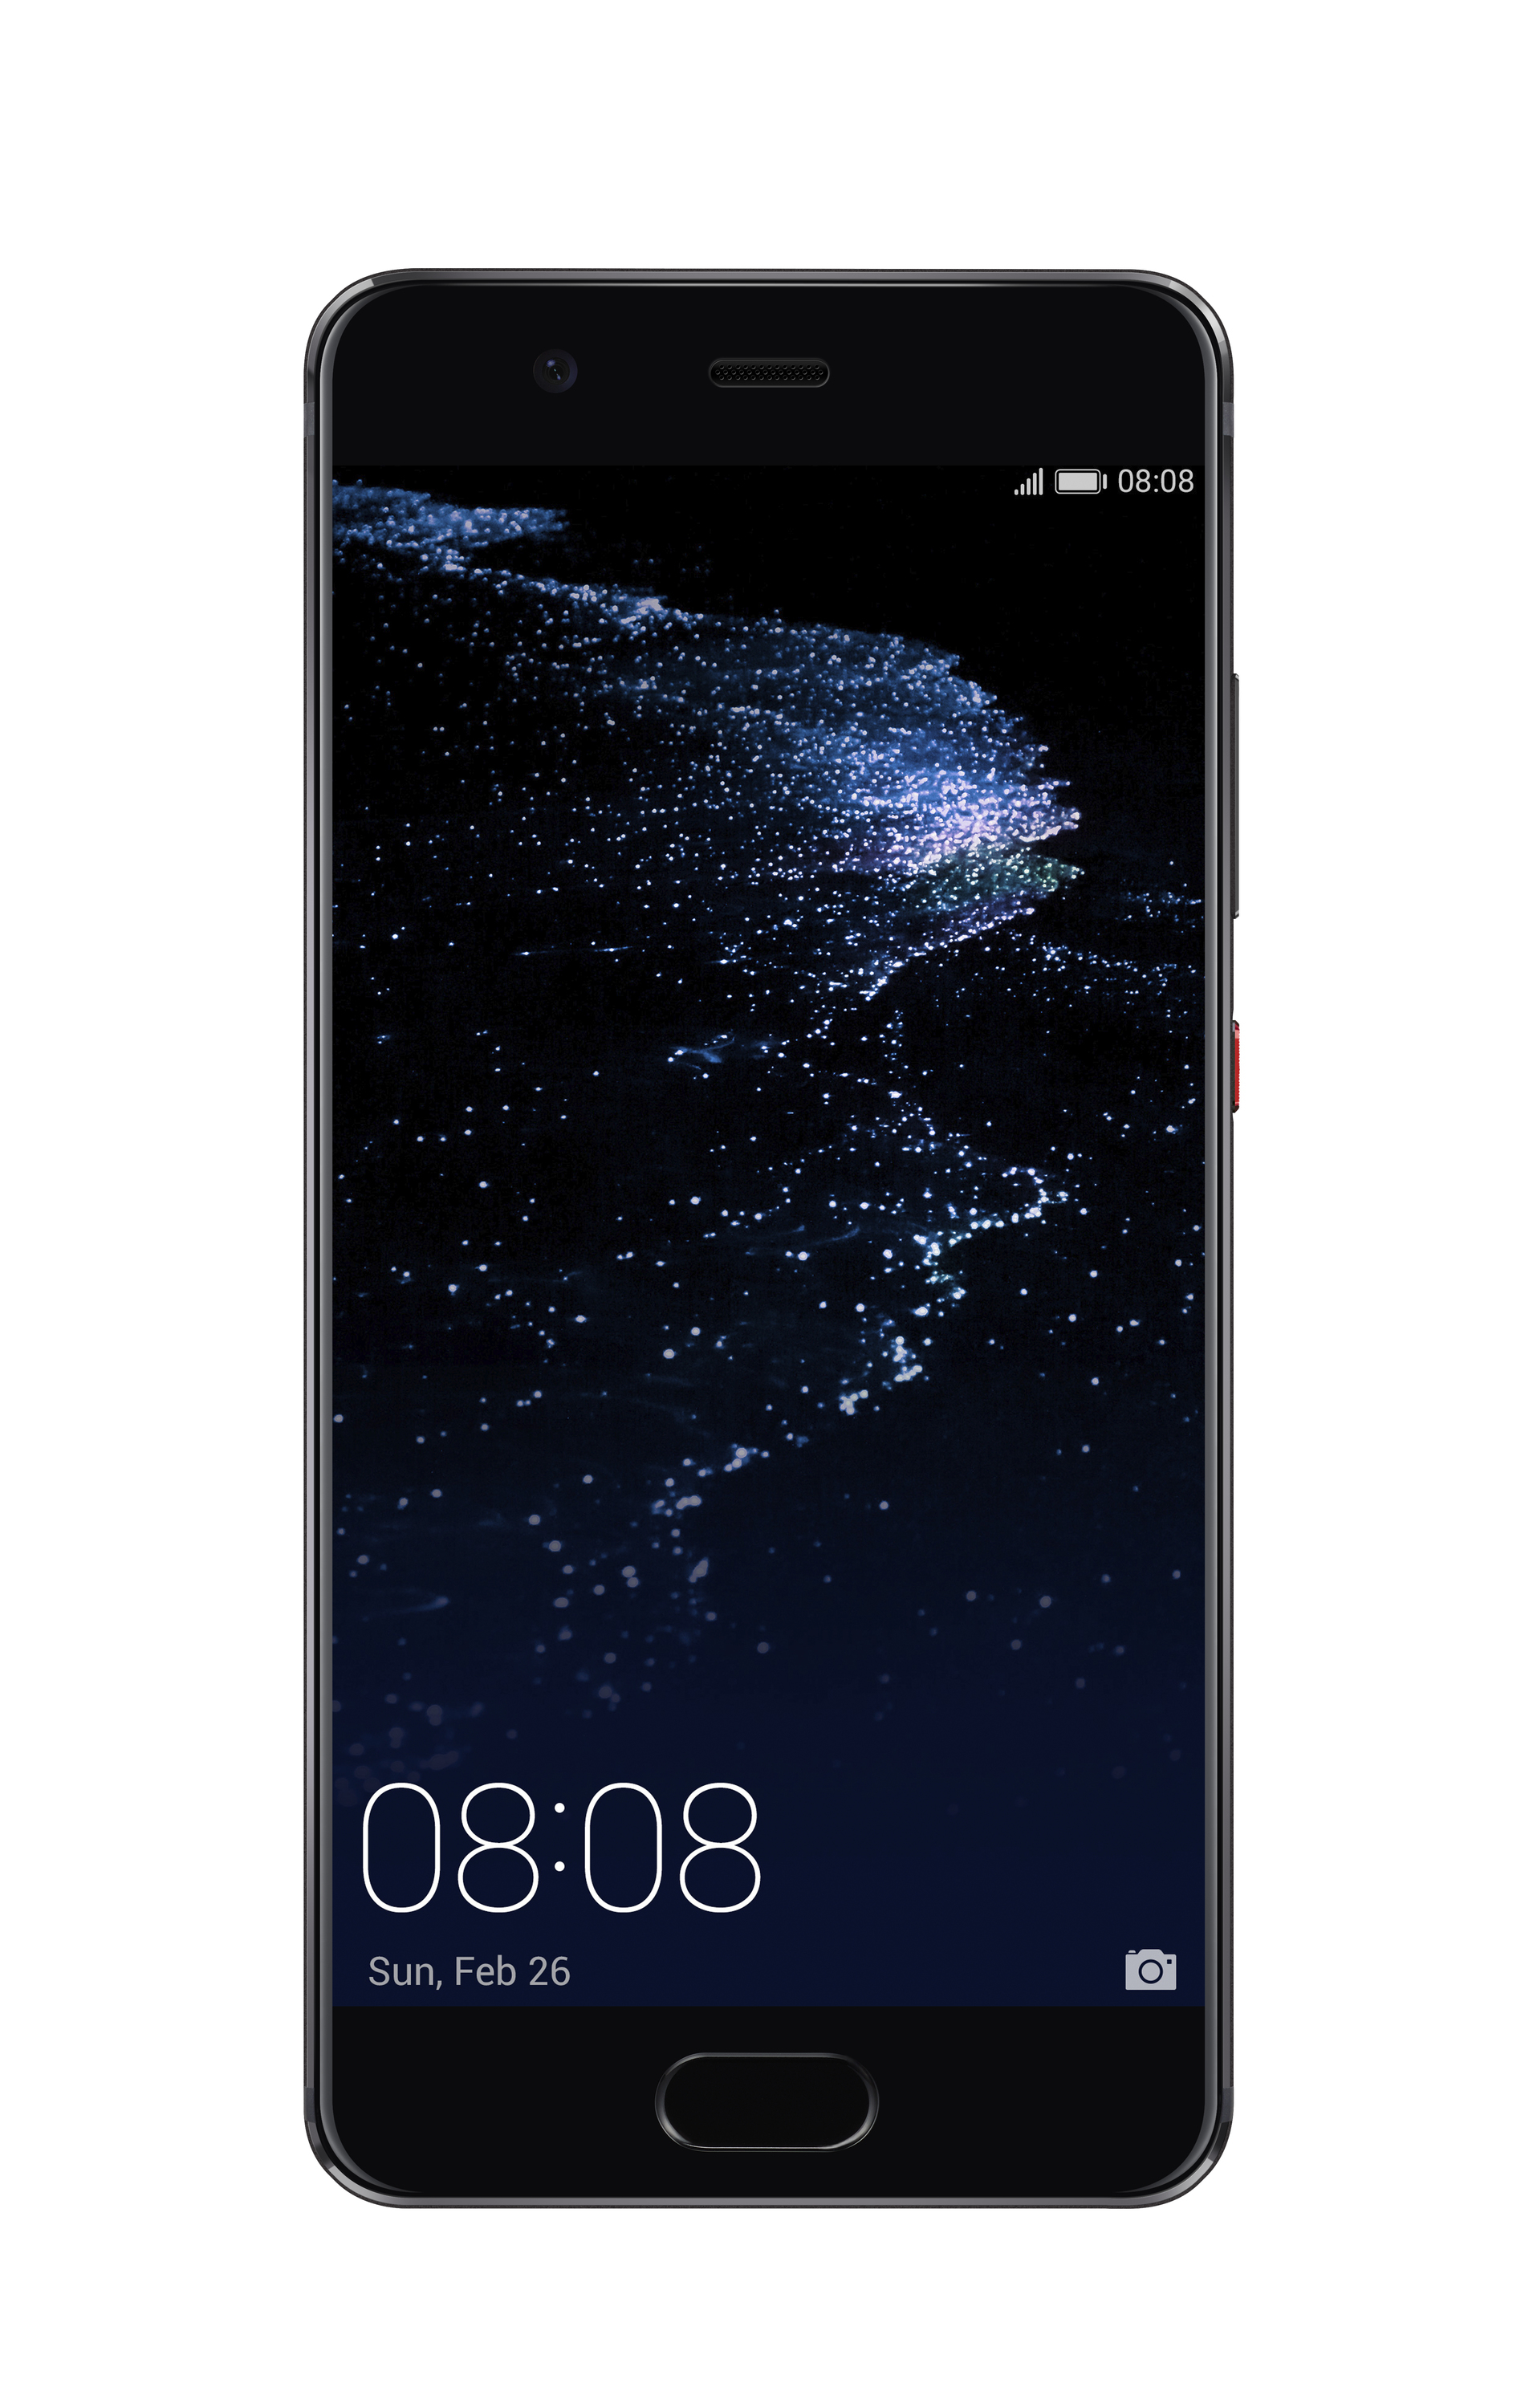 Huawei P10 LTE+++ (Cat.9) Smartphone 12,95cm/5,1'' Android 7.0 20MP 64GB für 449,00 Euro